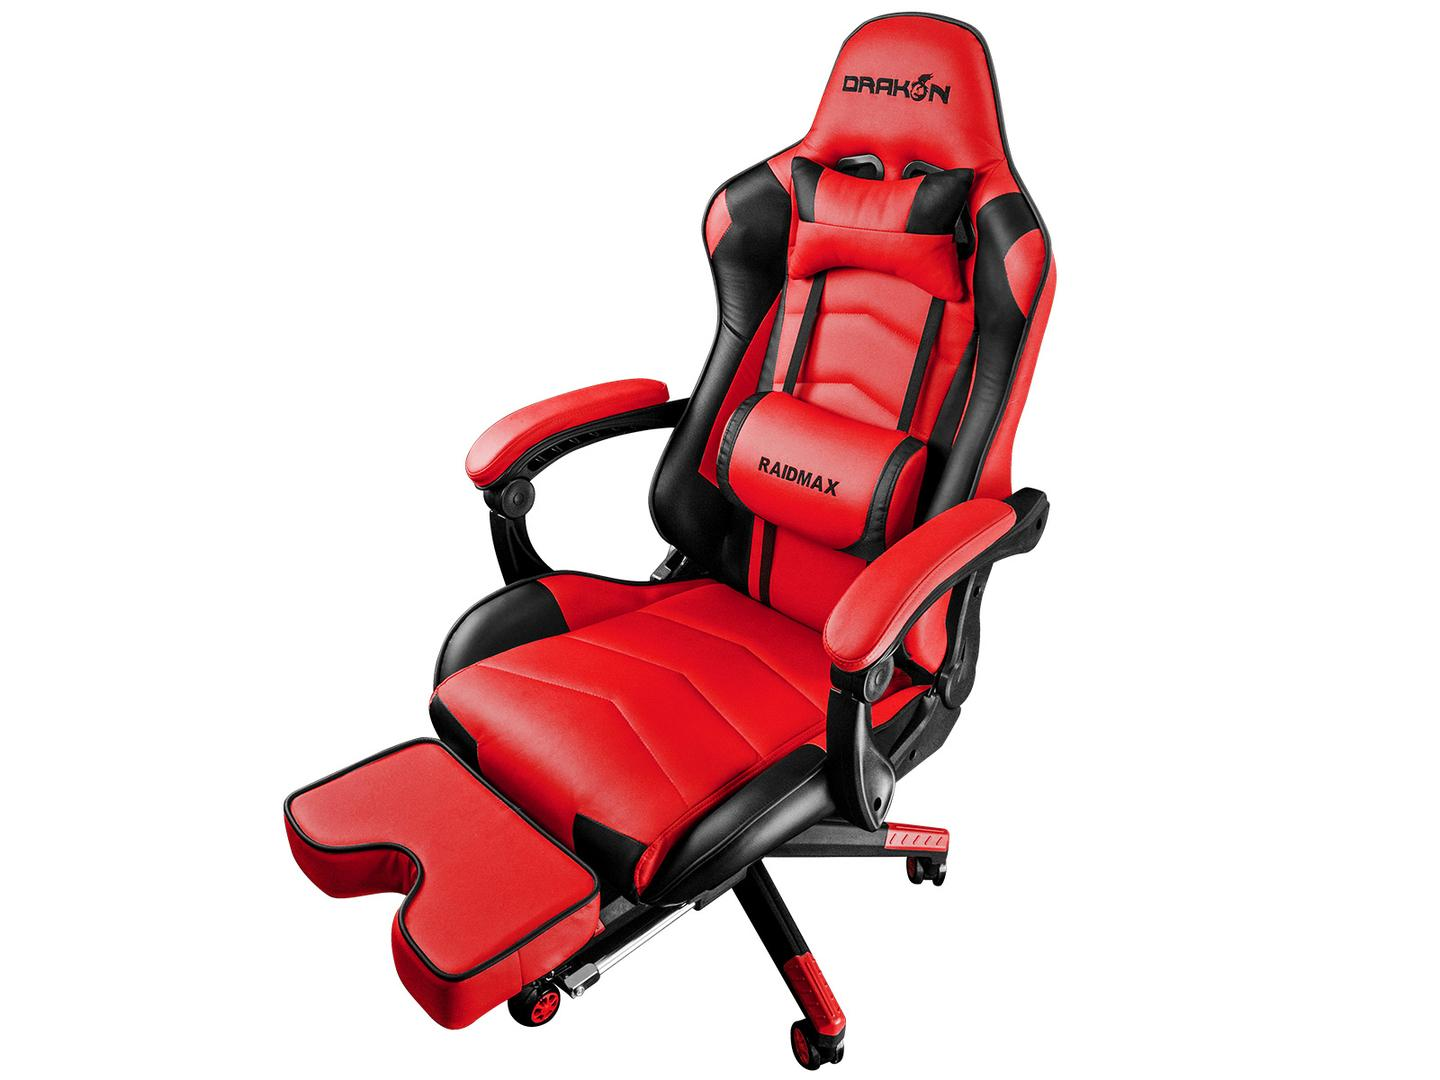 zeus thunder ultimate gaming systems chair lifetime stacking chairs video game for sale room prices brands raidmax drakon dk 709